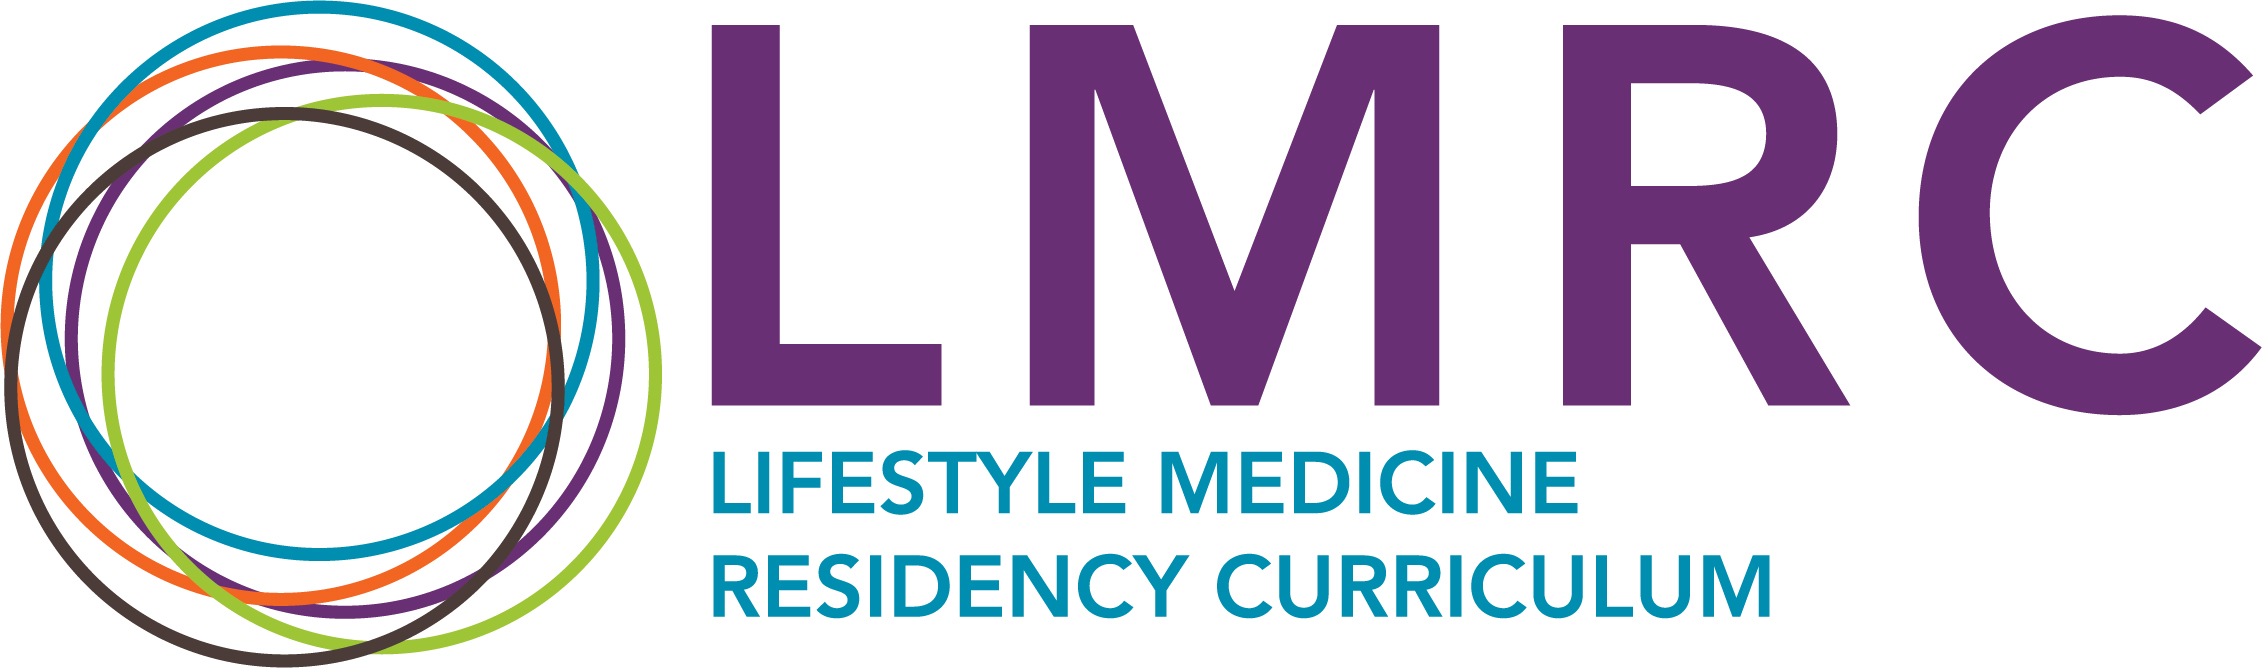 medical education courses, events, and information on how Lifestyle Medicine treats and reverses chronic disease